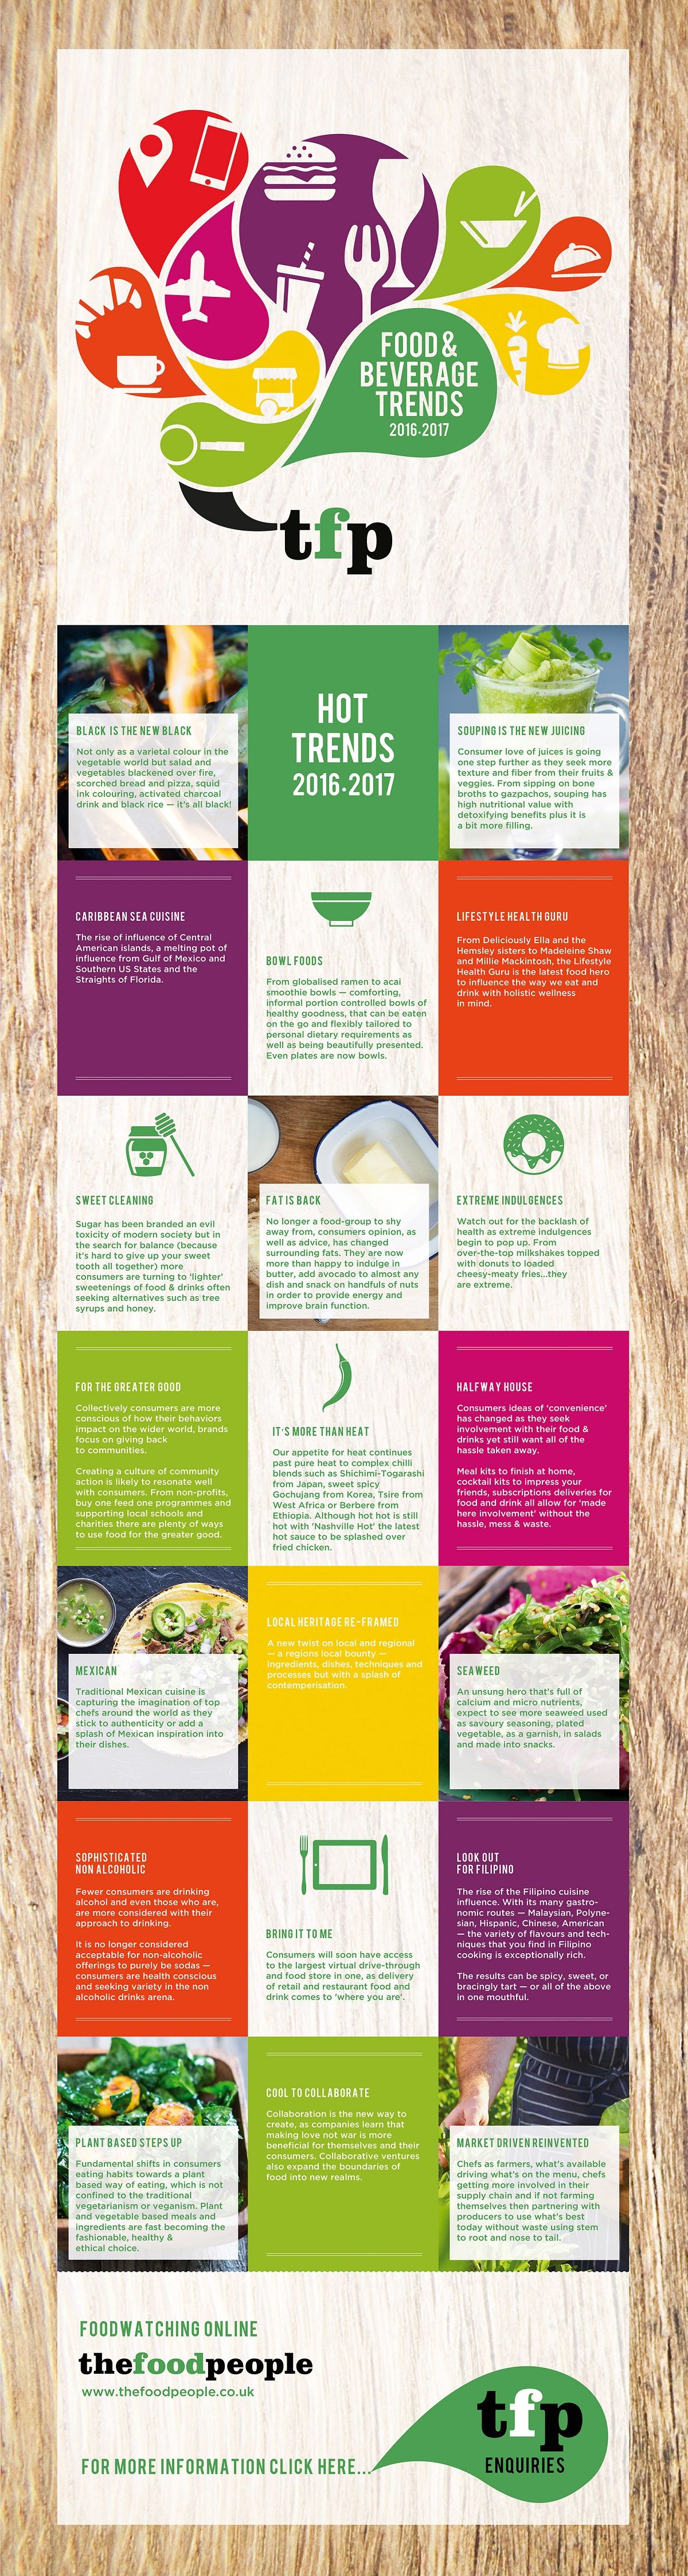 Food And Beverage Trends 2016-2017 #Infographic